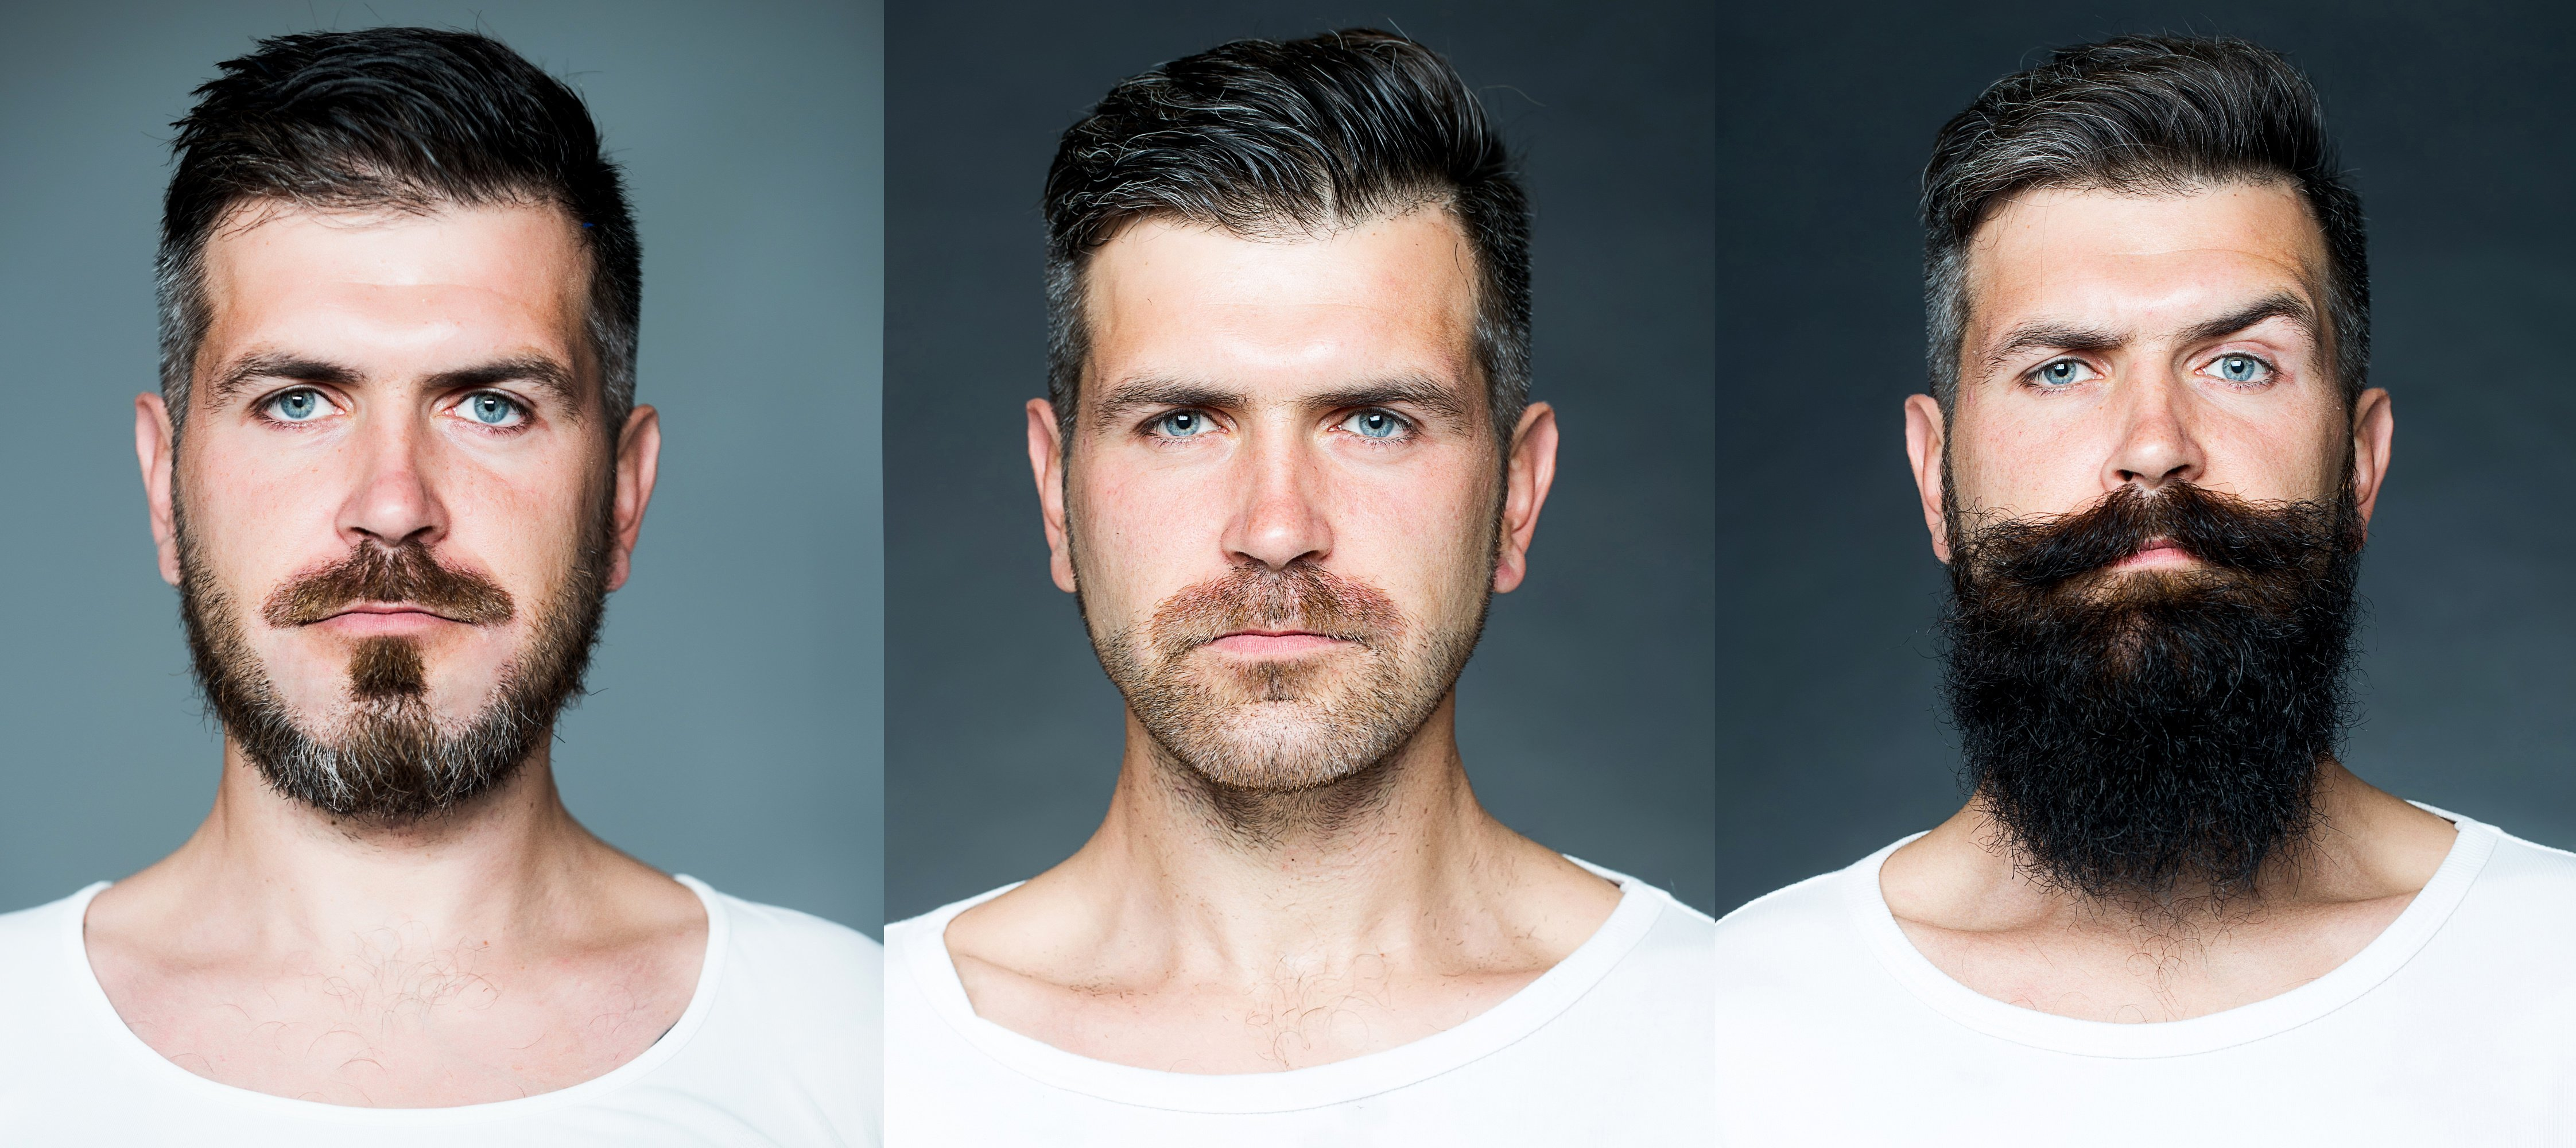 What Are the Main Beard Types? | Find The Beard That Suits You Best